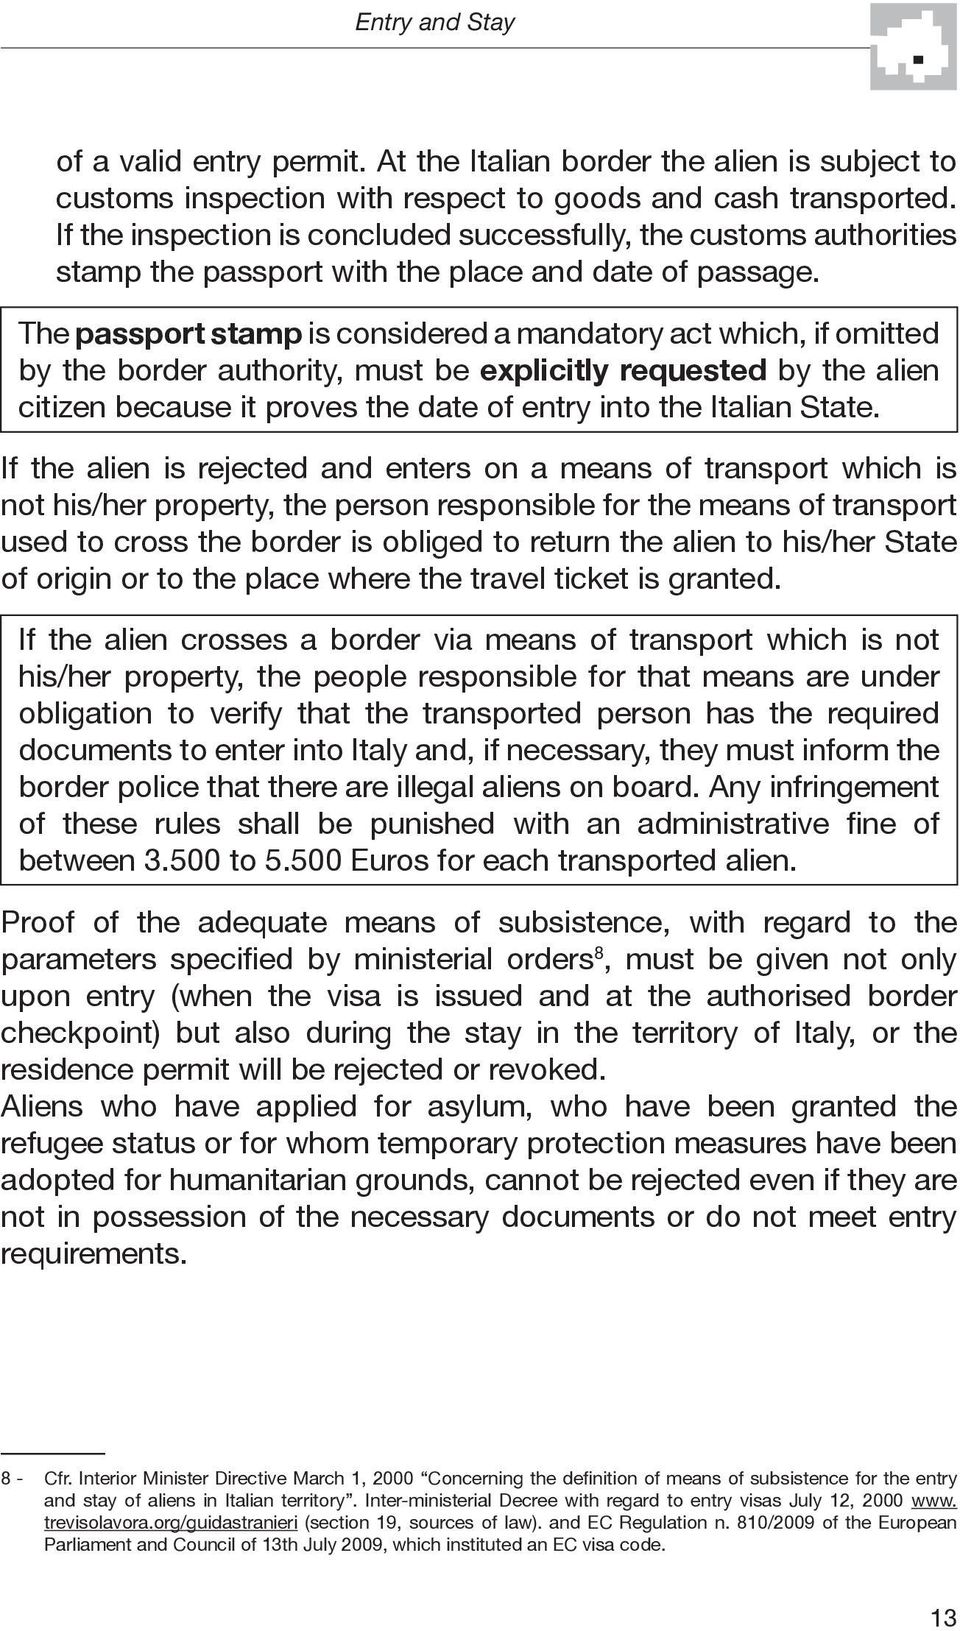 The passport stamp is considered a mandatory act which, if omitted by the border authority, must be explicitly requested by the alien citizen because it proves the date of entry into the Italian